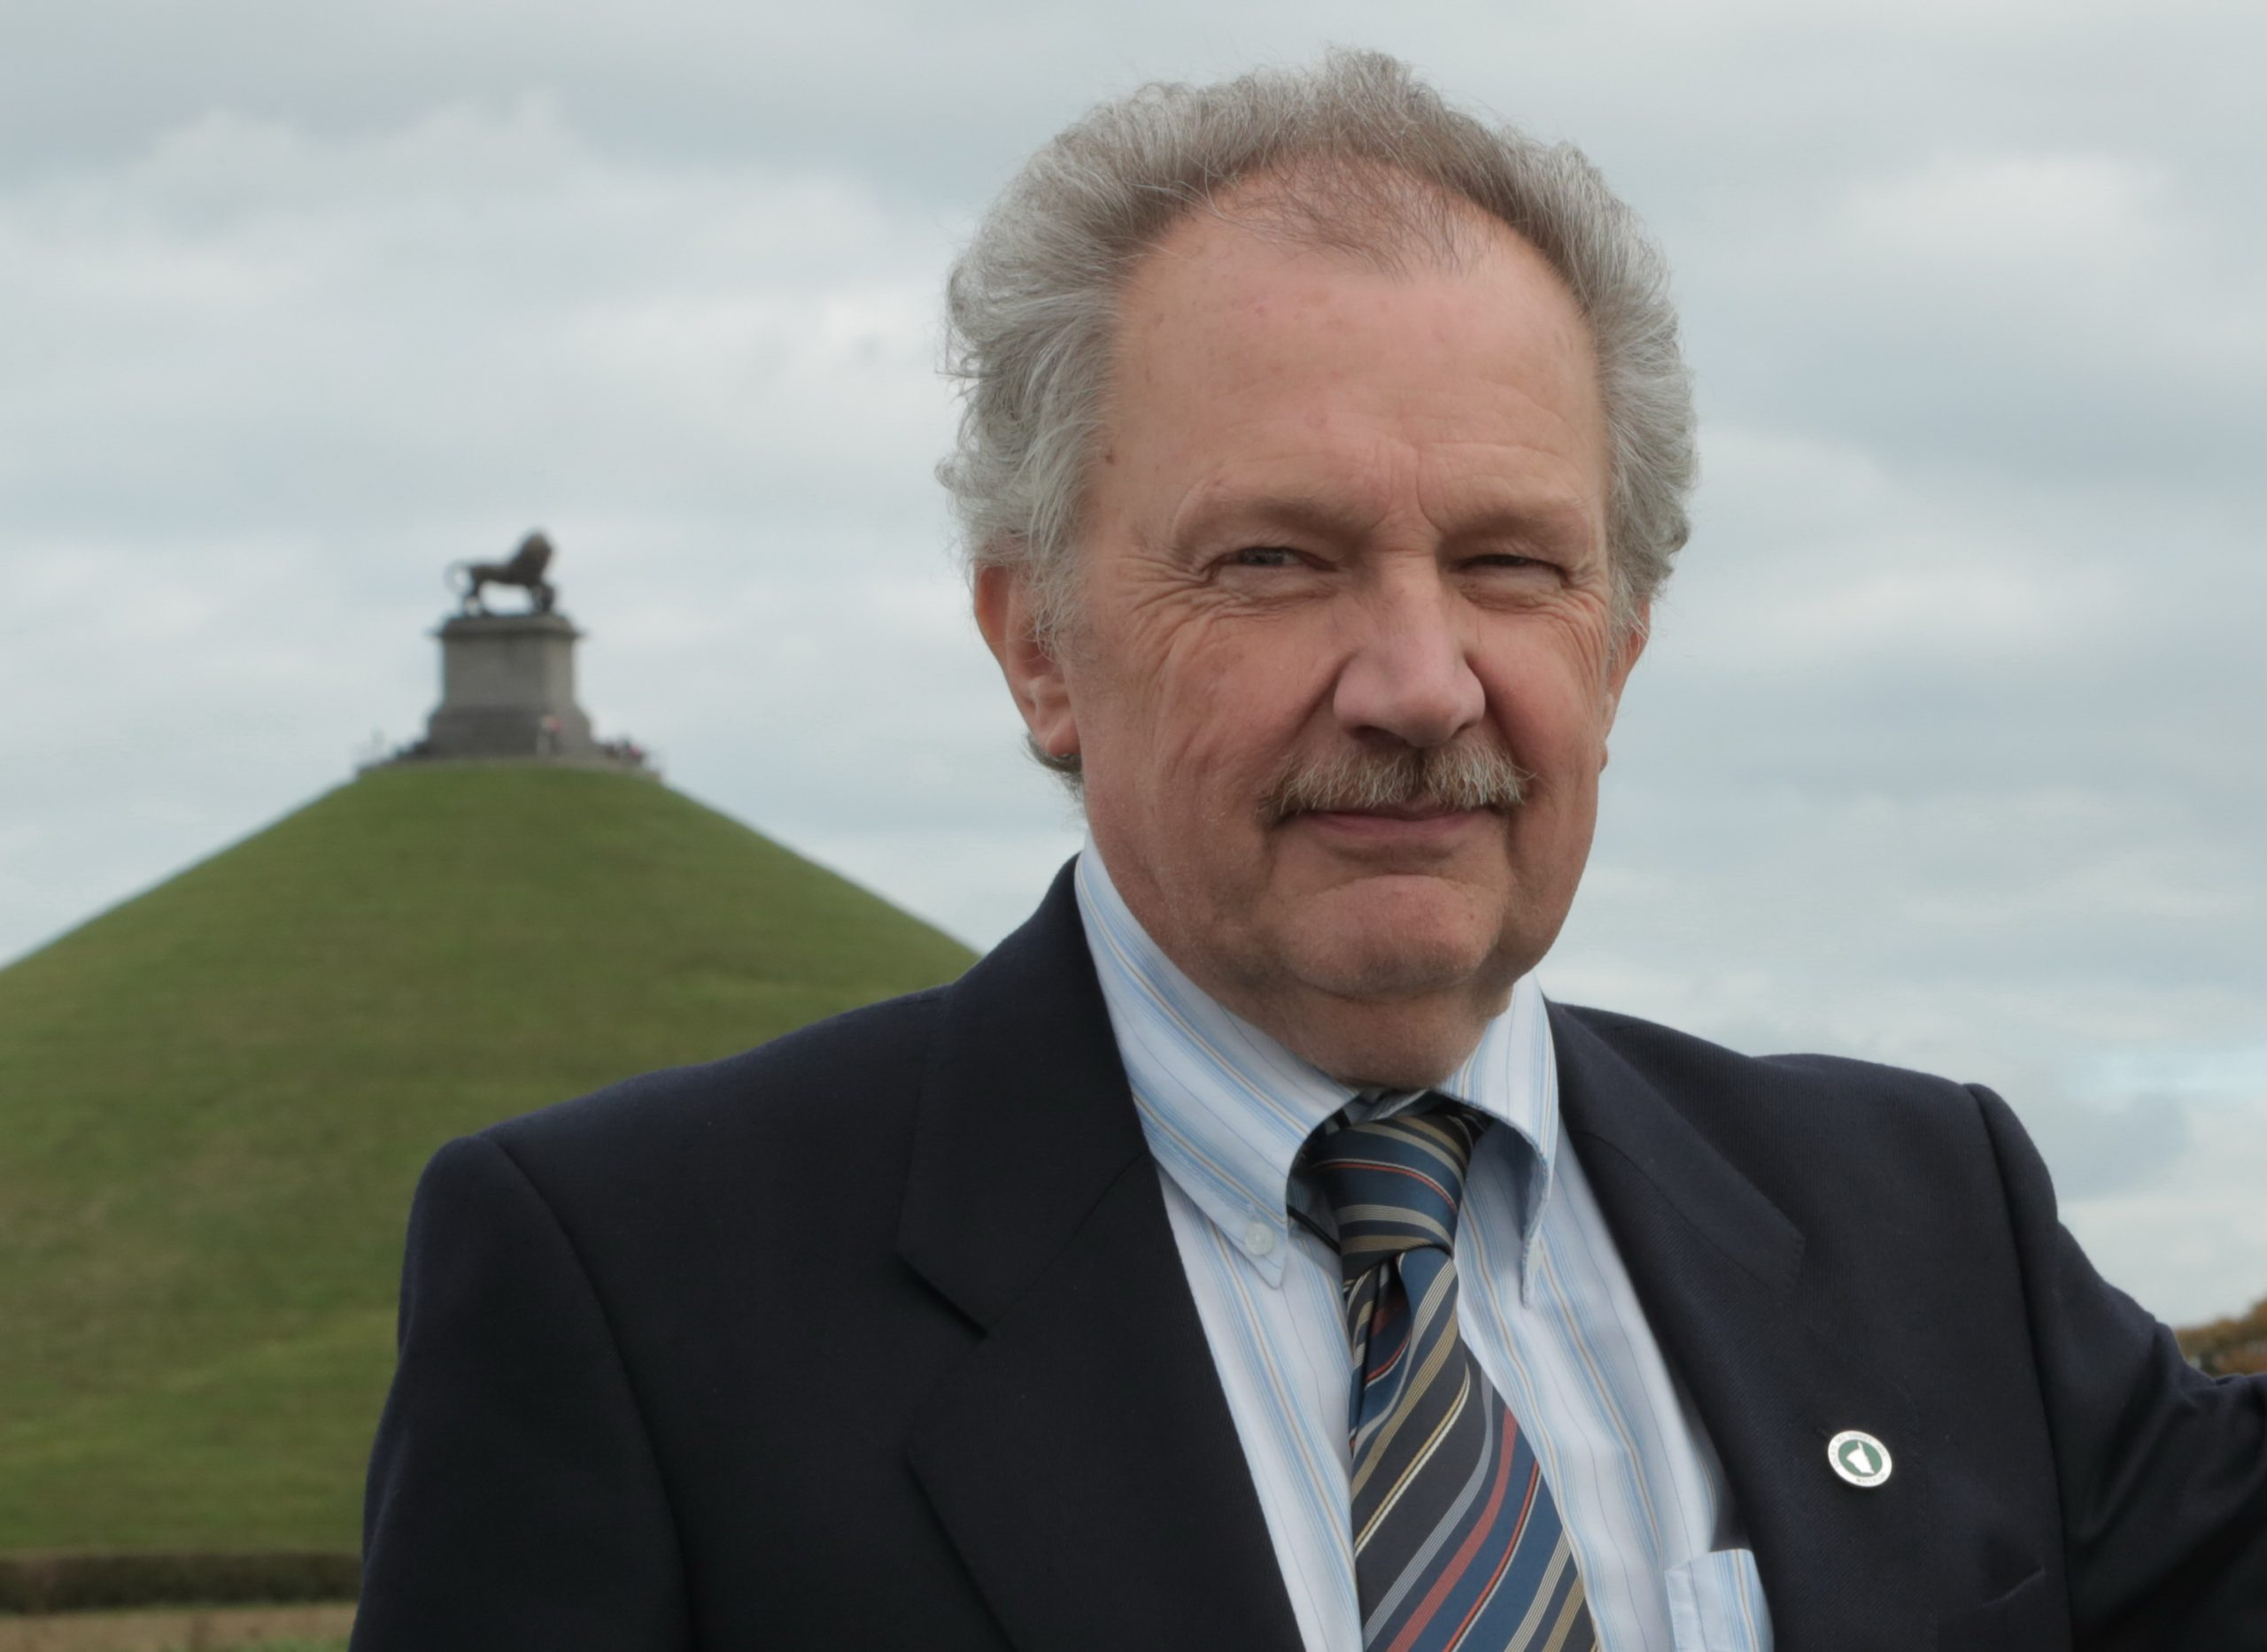 An image of Alain Lacroix next to the Lion's Mound